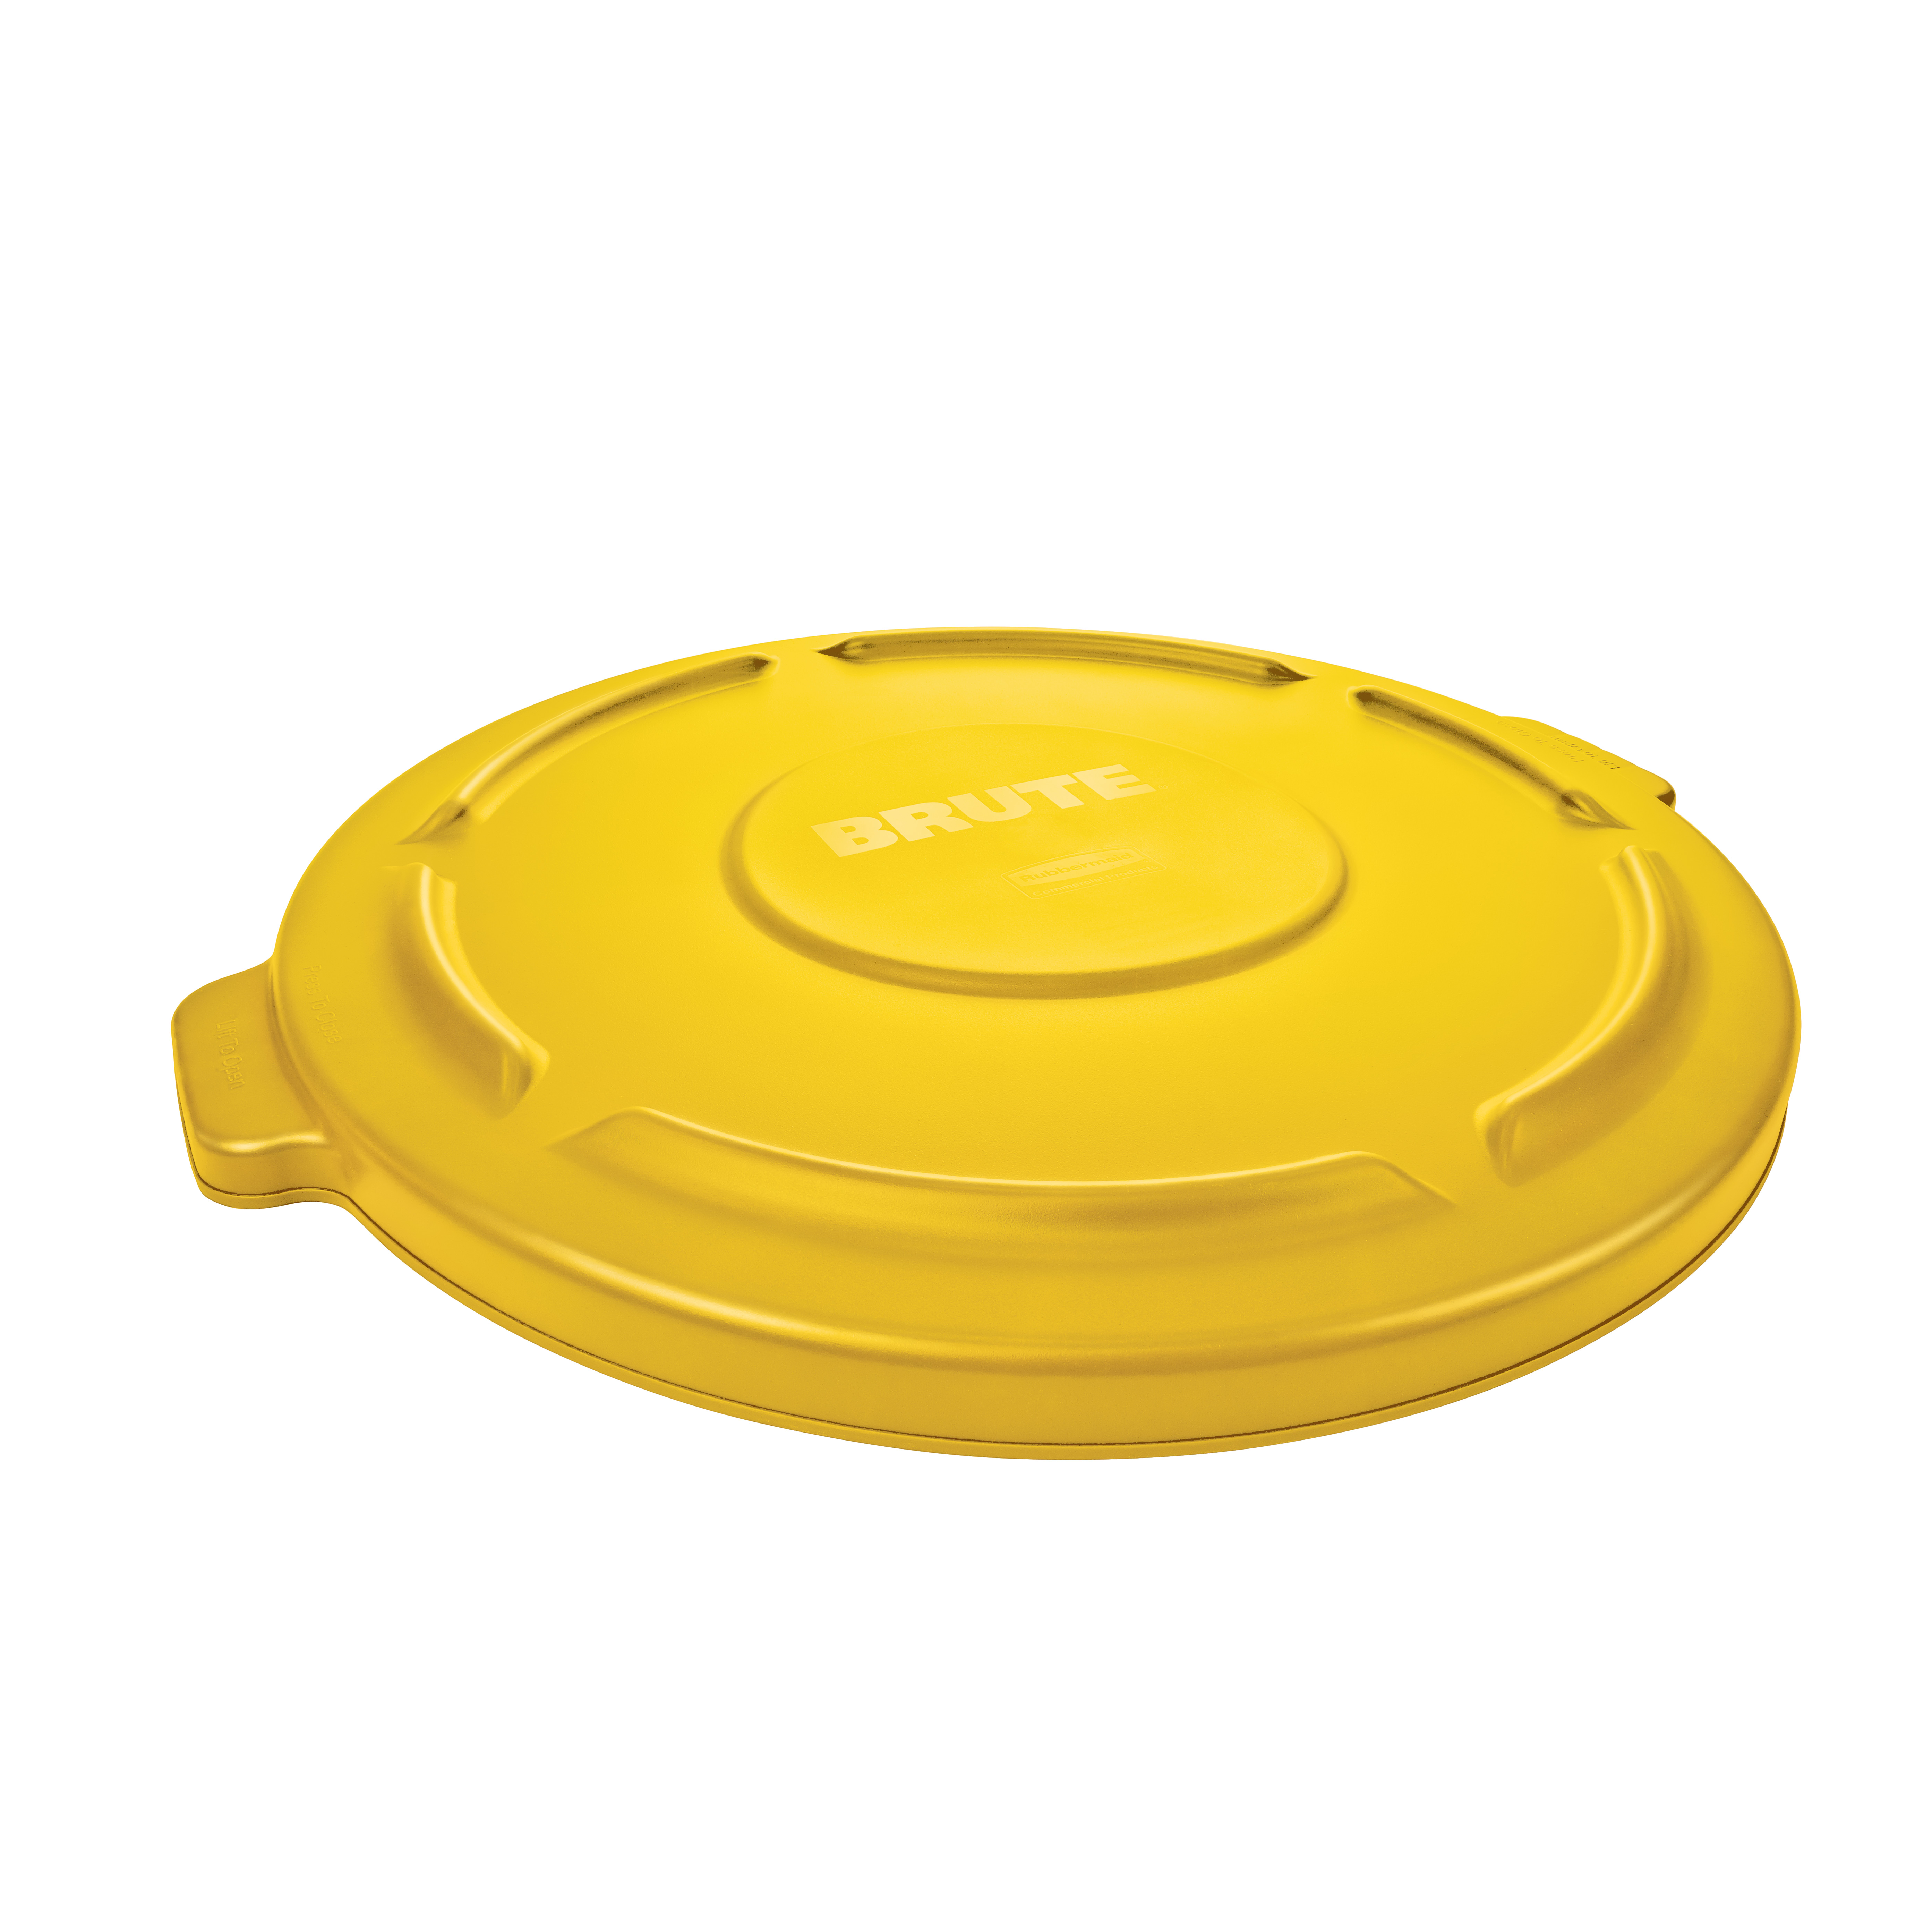 Rubbermaid Commercial Products FG261960YEL trash receptacle lid / top